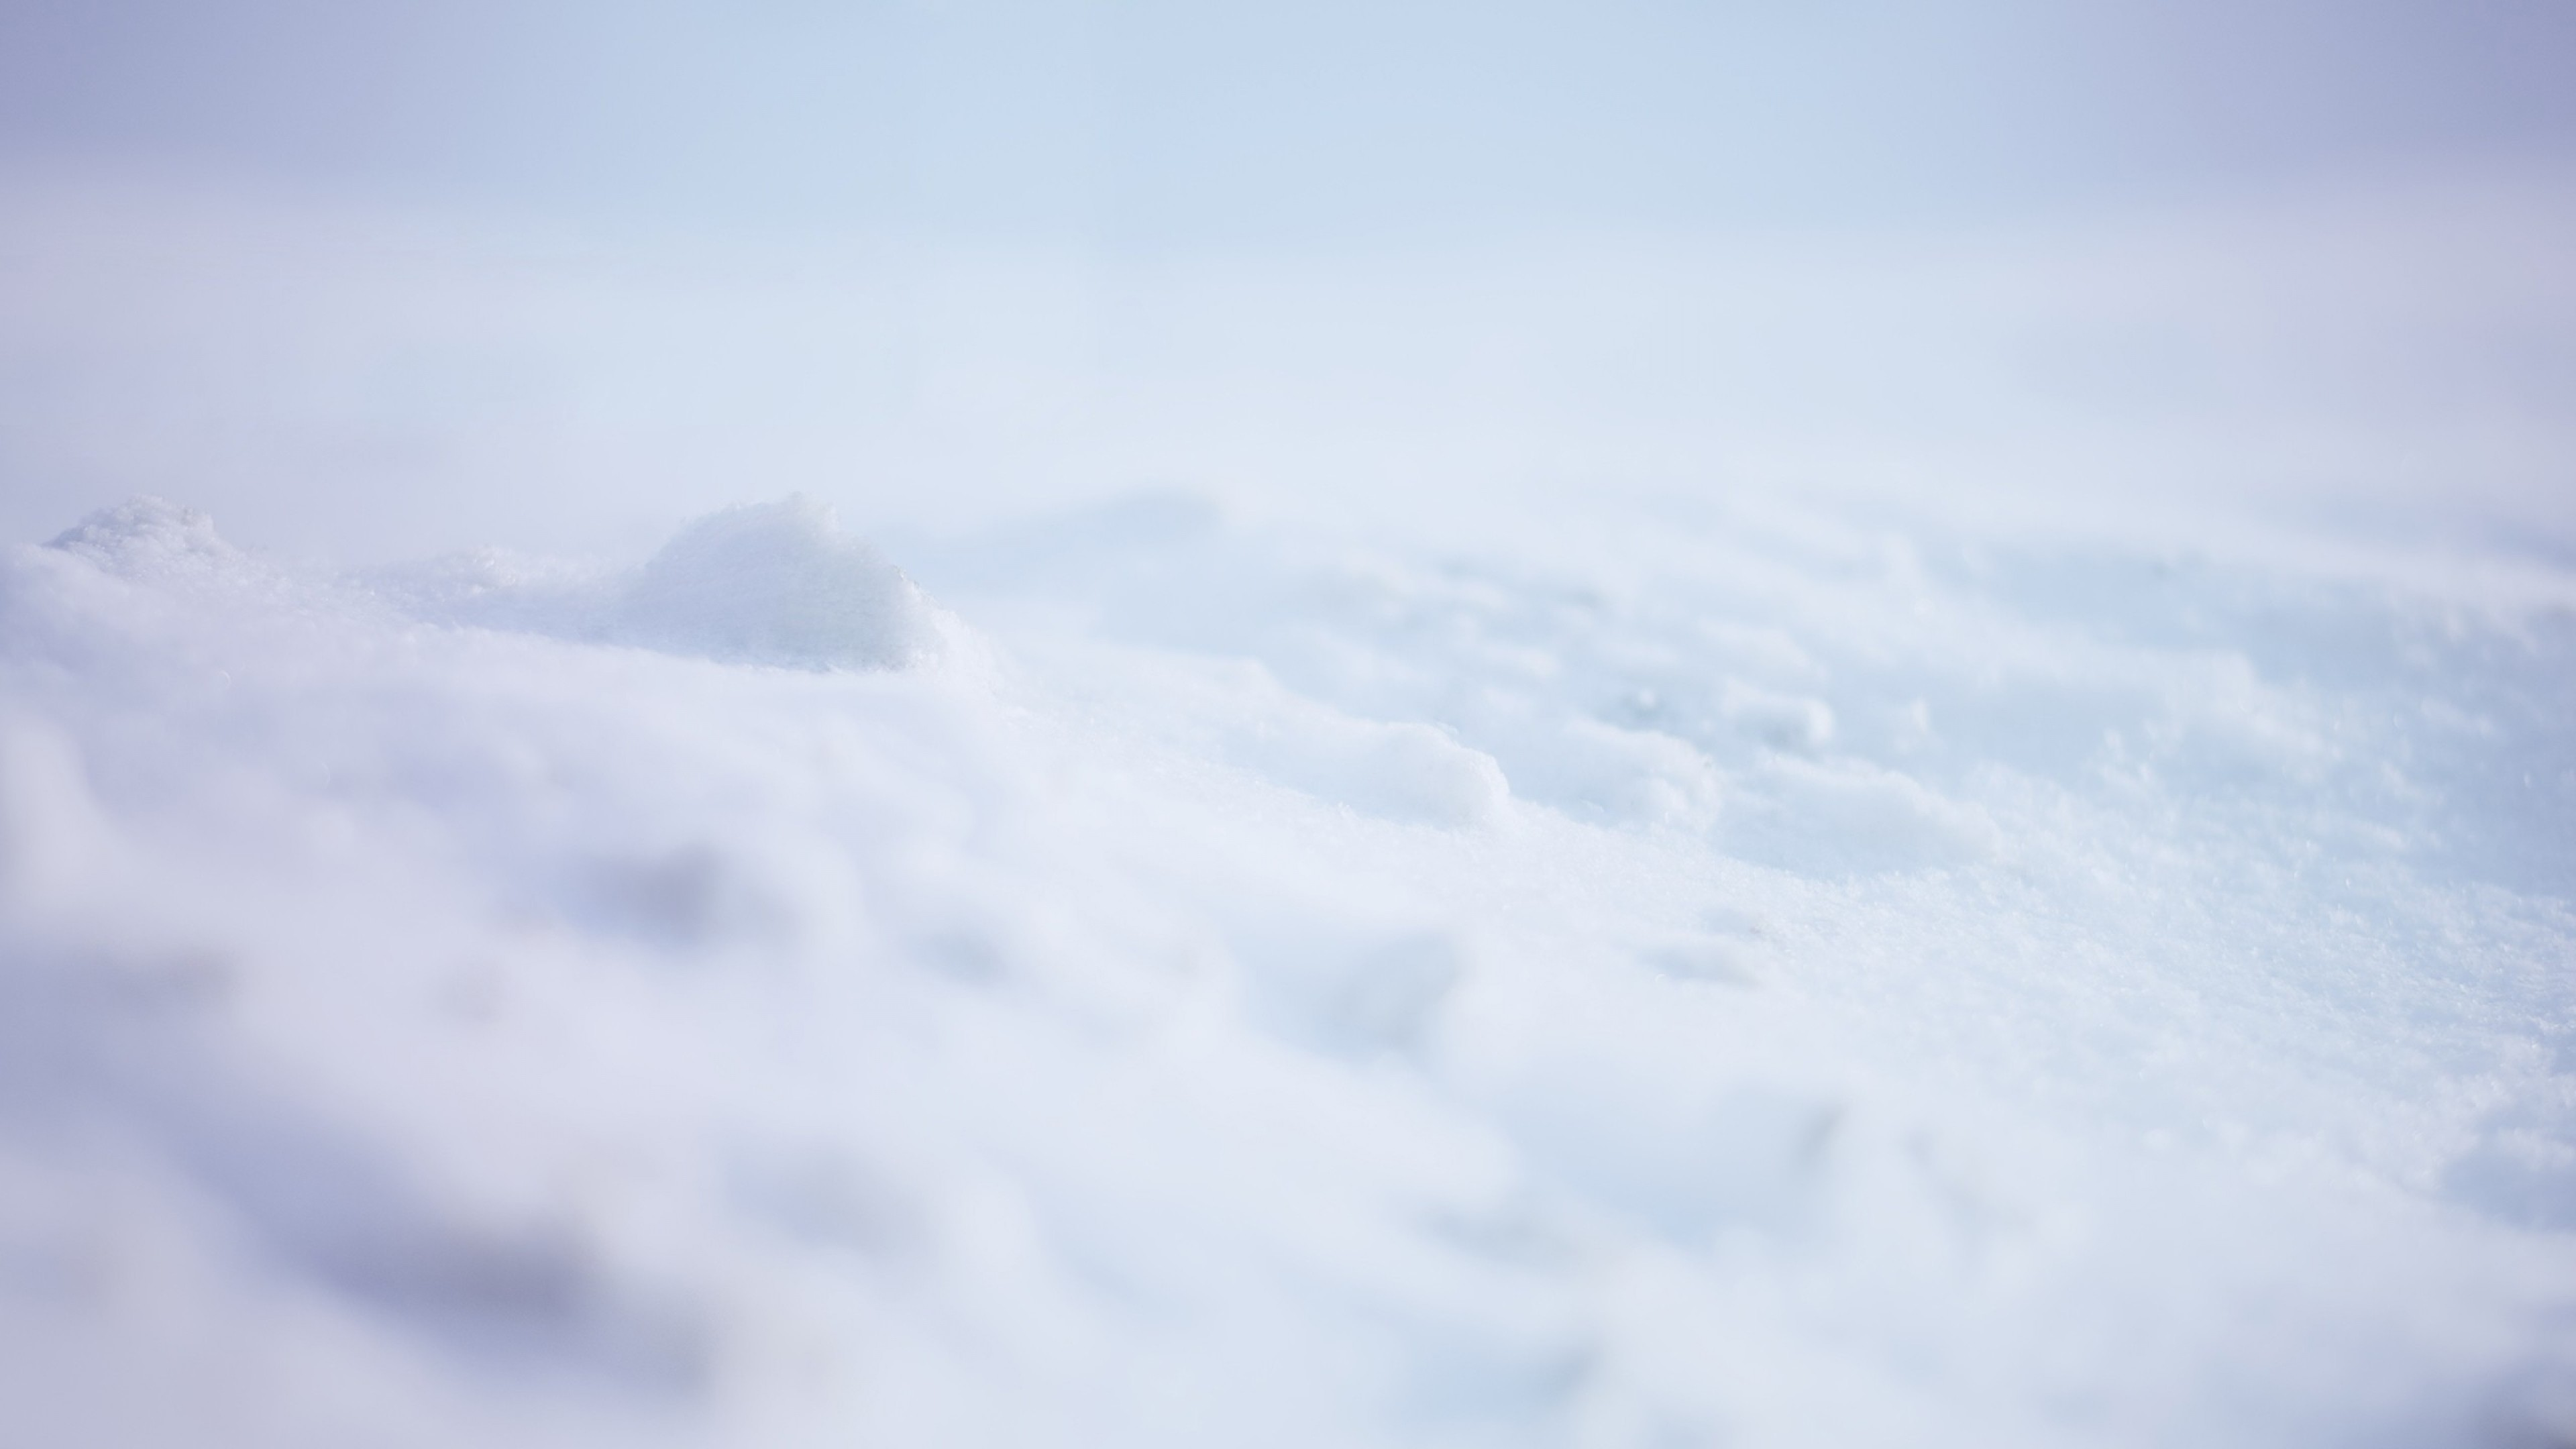 3840x2160  Wallpaper snow, white, background, surface